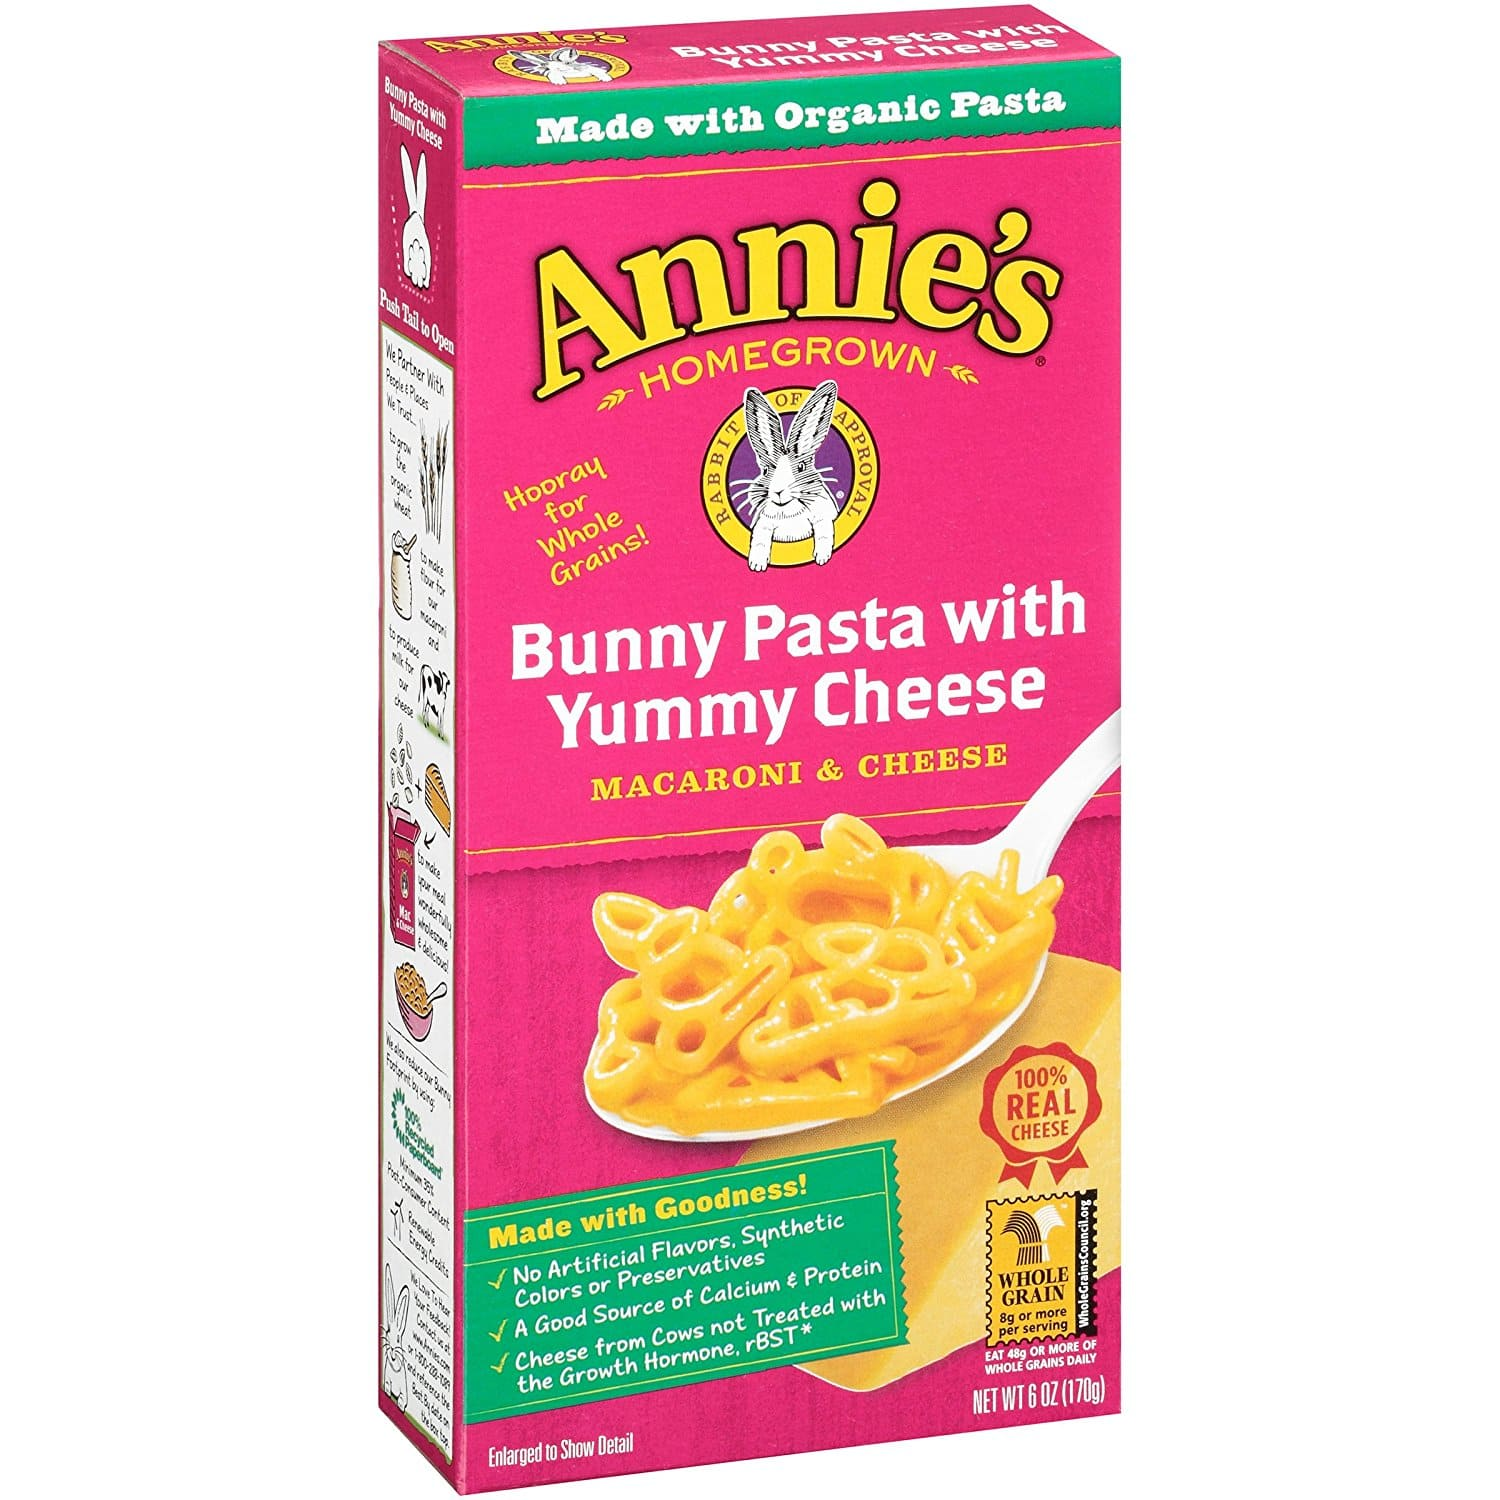 12-Pack of 6oz Annie's Bunny Pasta w/ Yummy Cheese Macaroni & Cheese $8.29 or Less w/ S&S + Free Shipping ~ Amazon